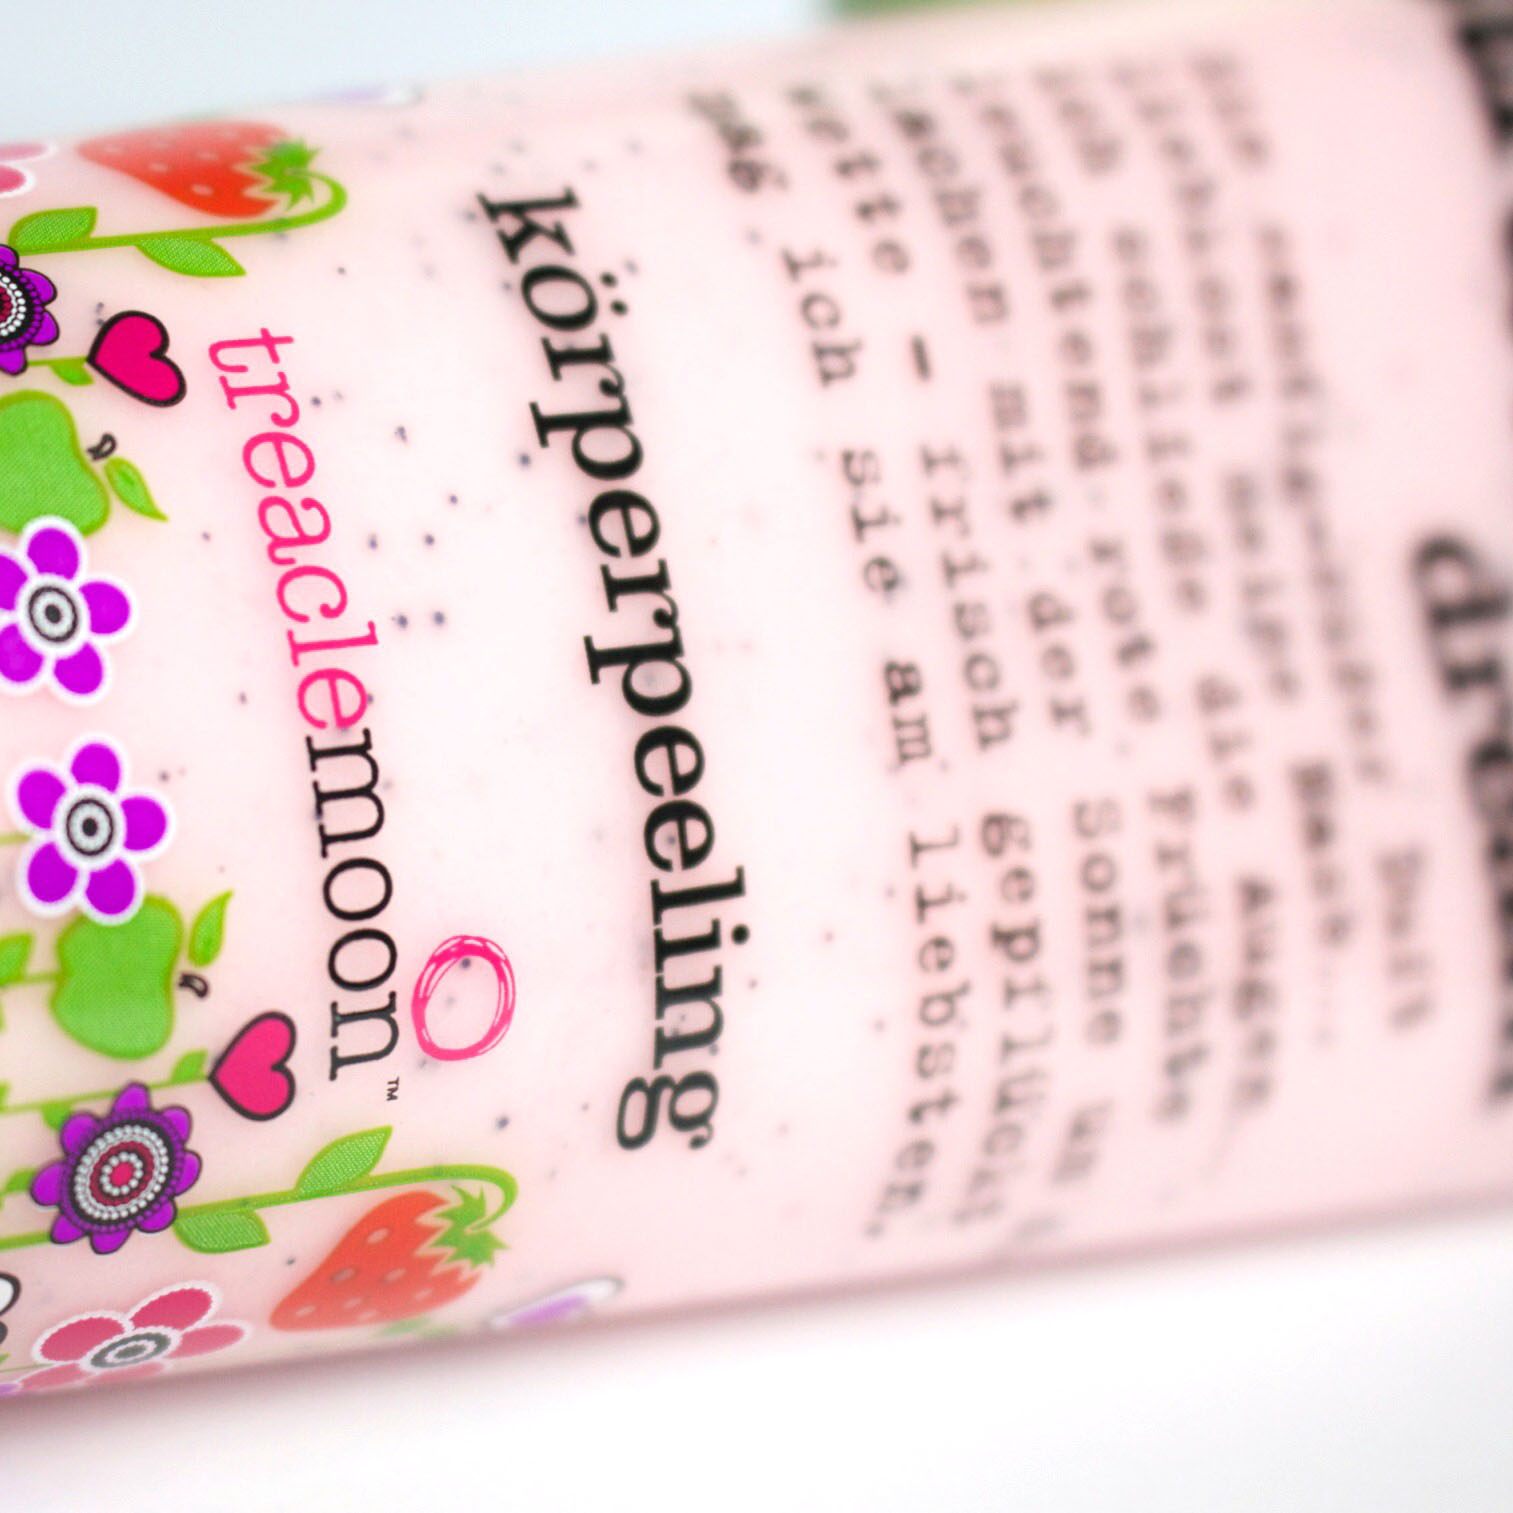 Treaclemoon-Review-Körperpeeling-Peeling-Neu-New-Bodyspray-Shoppinator